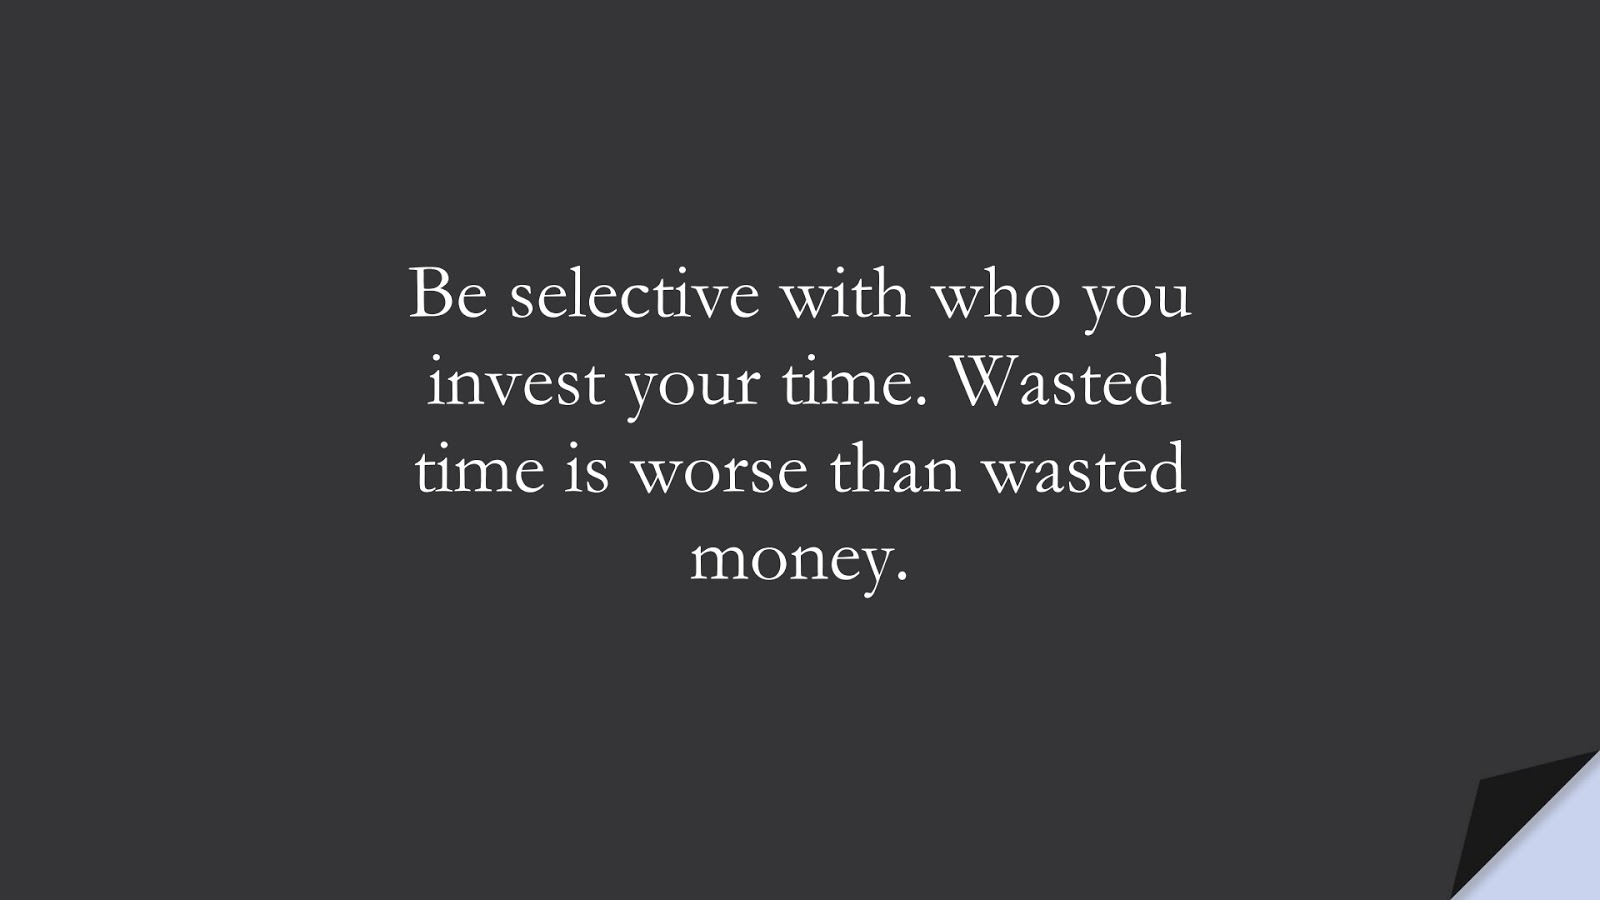 Be selective with who you invest your time. Wasted time is worse than wasted money.FALSE